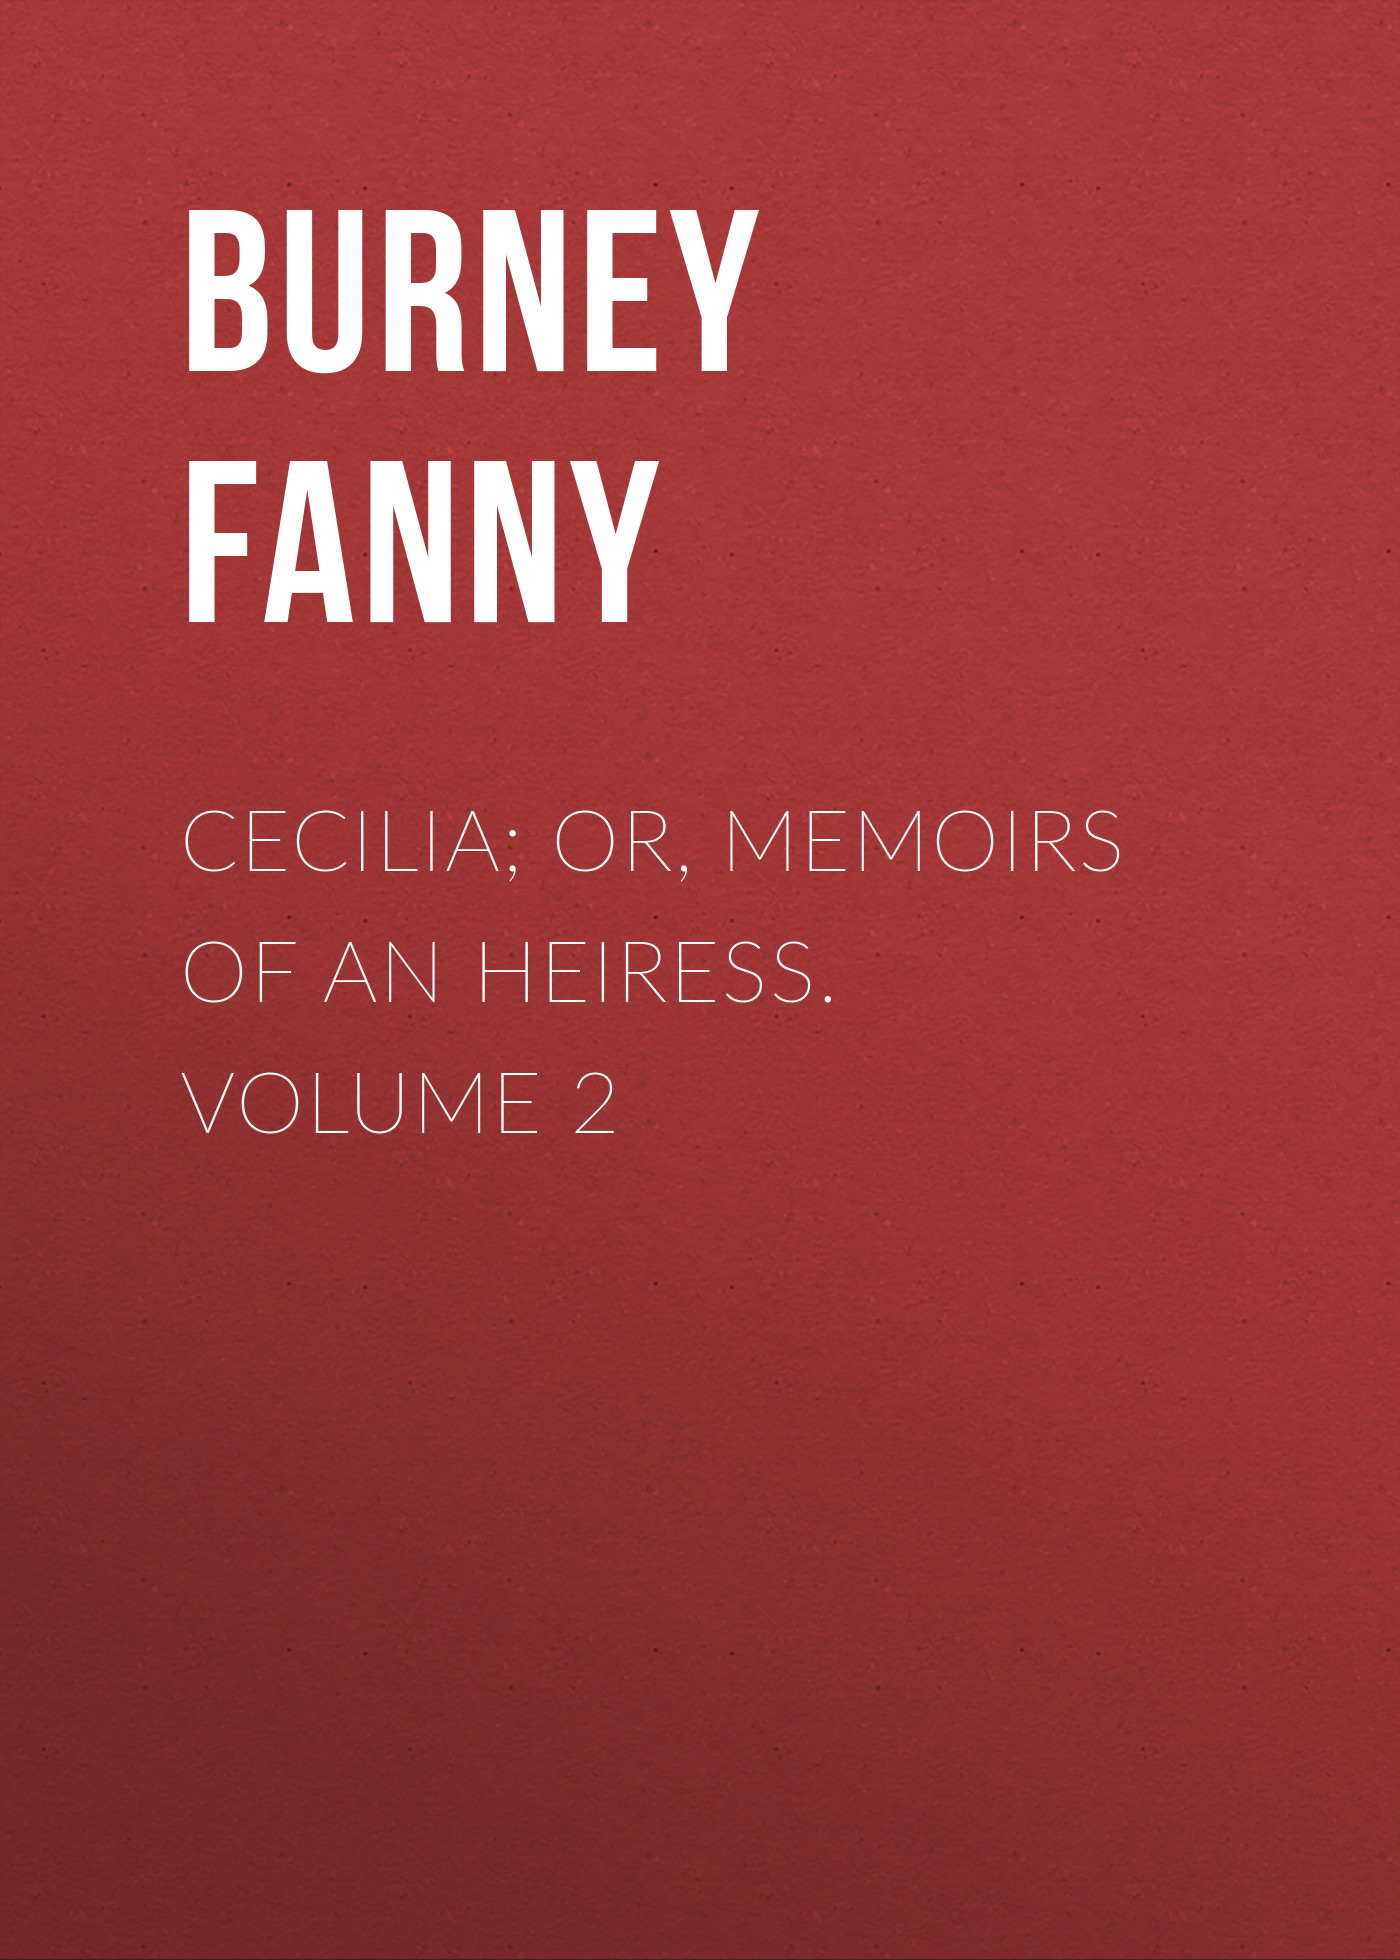 Burney Fanny Cecilia; Or, Memoirs of an Heiress. Volume 2 burney fanny the wanderer or female difficulties volume 5 of 5